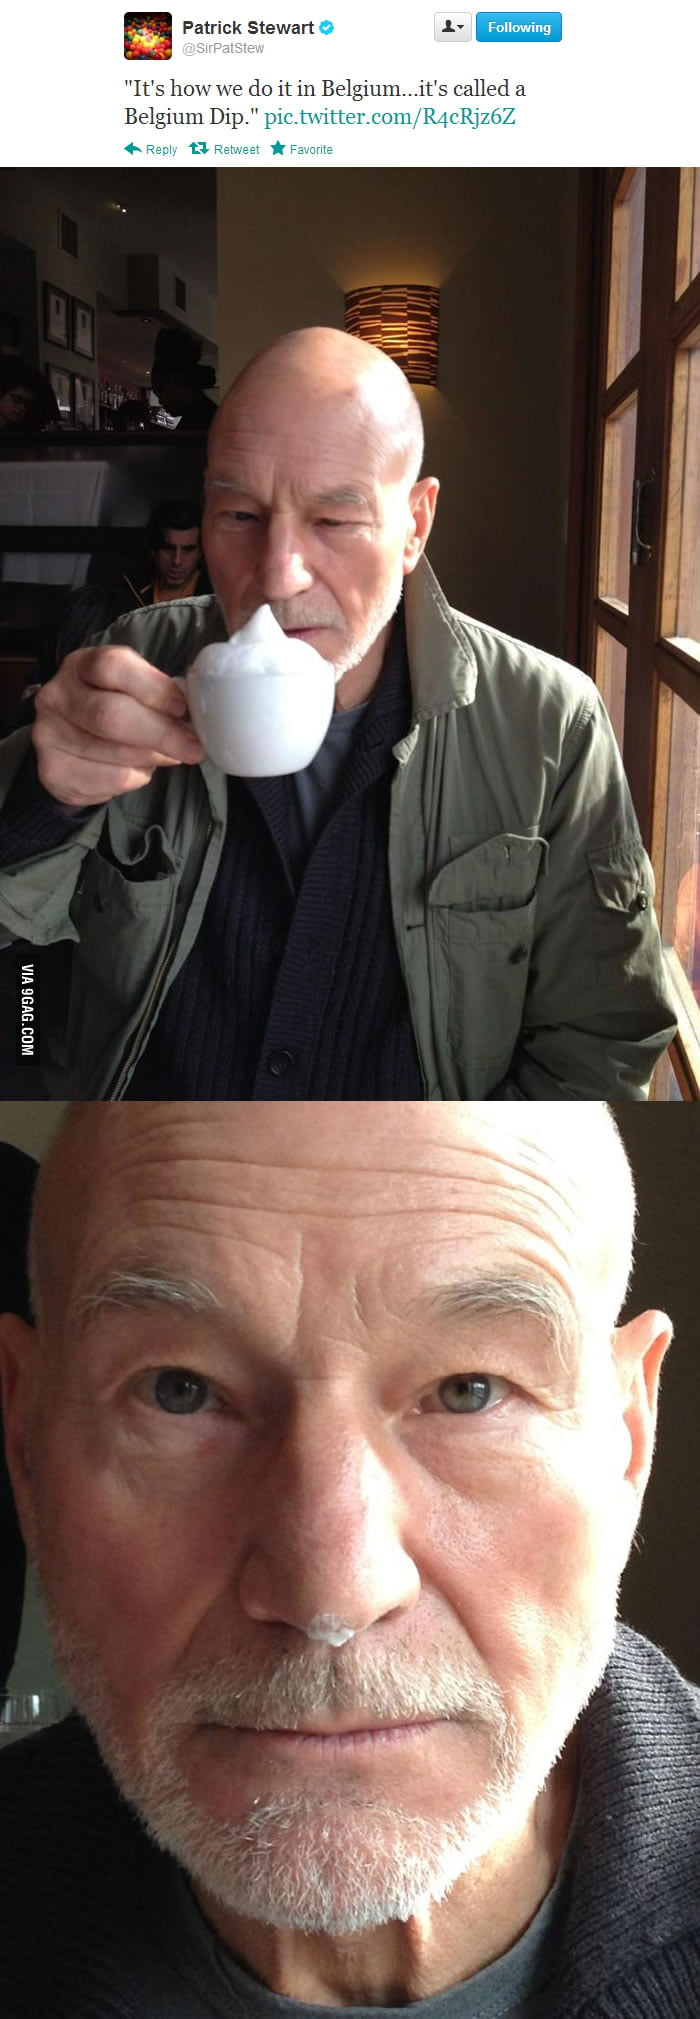 Patrick Stewart doing the Belgium Dip.